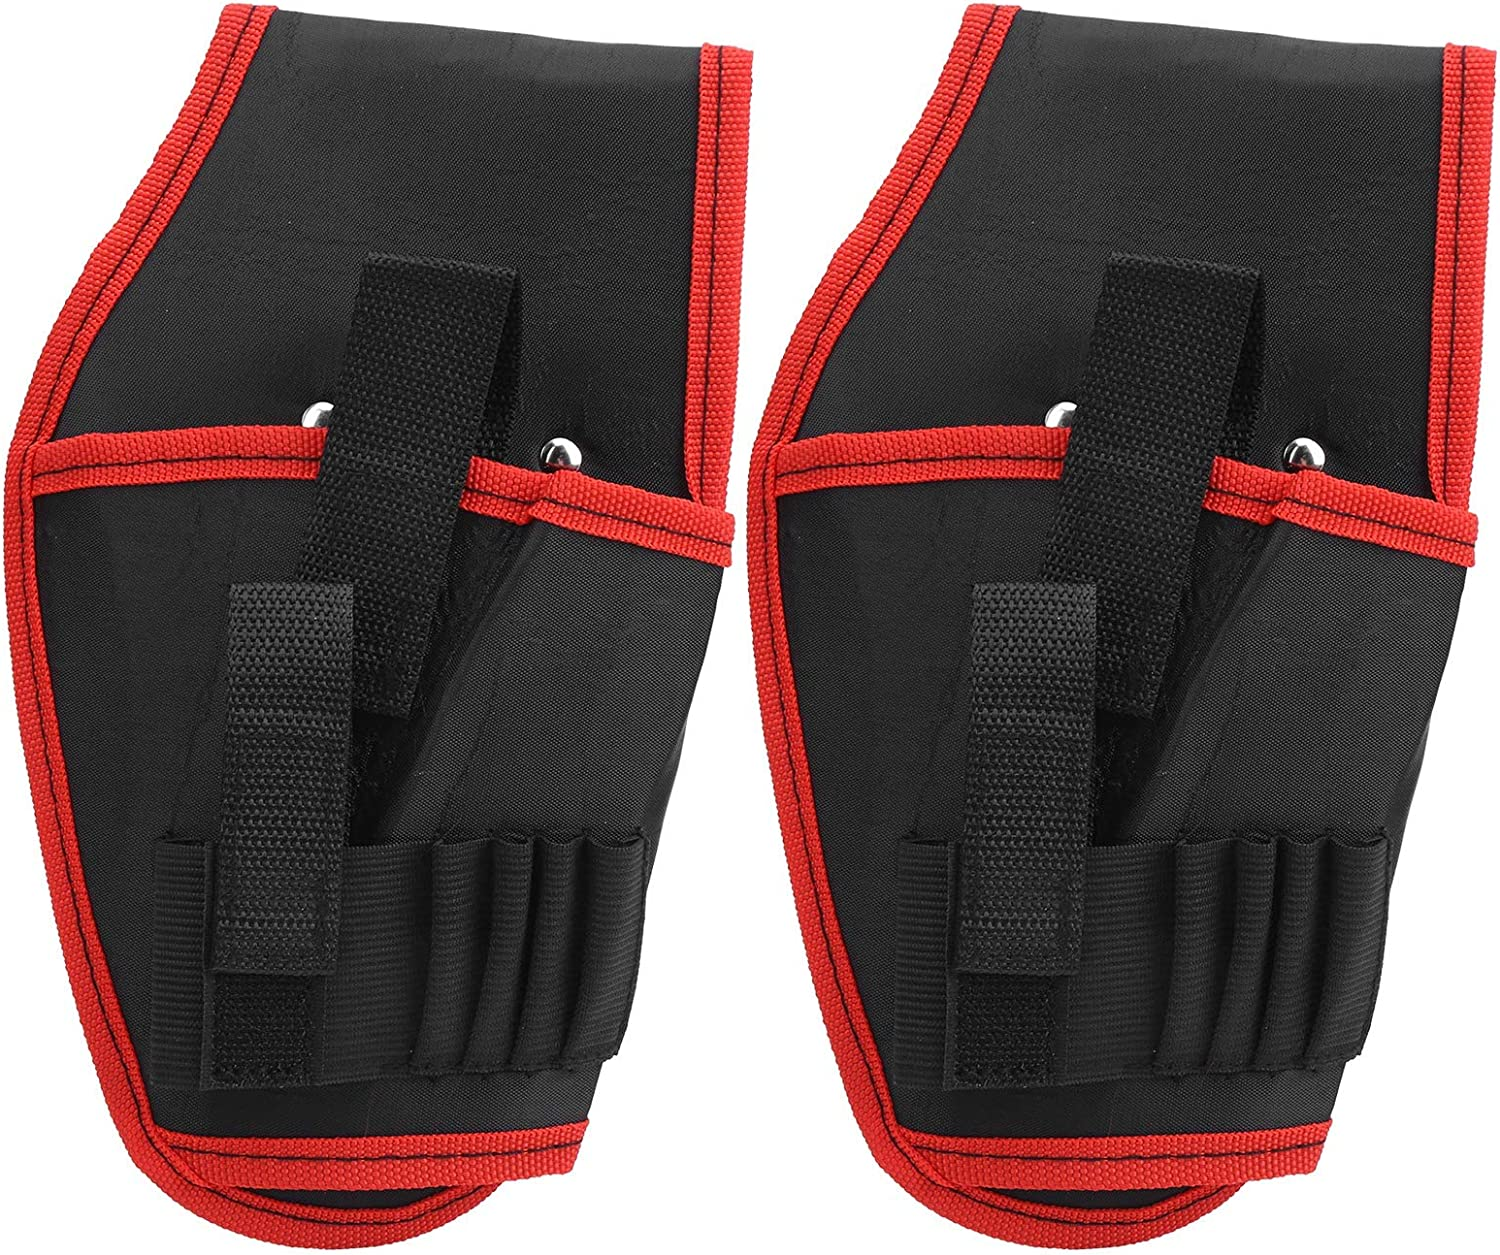 Diydeg Drill Holster, 2Pcs Good Wear Resistance Electric Drill Tool Belt Bag Adjustable for Drill Bits for Tools